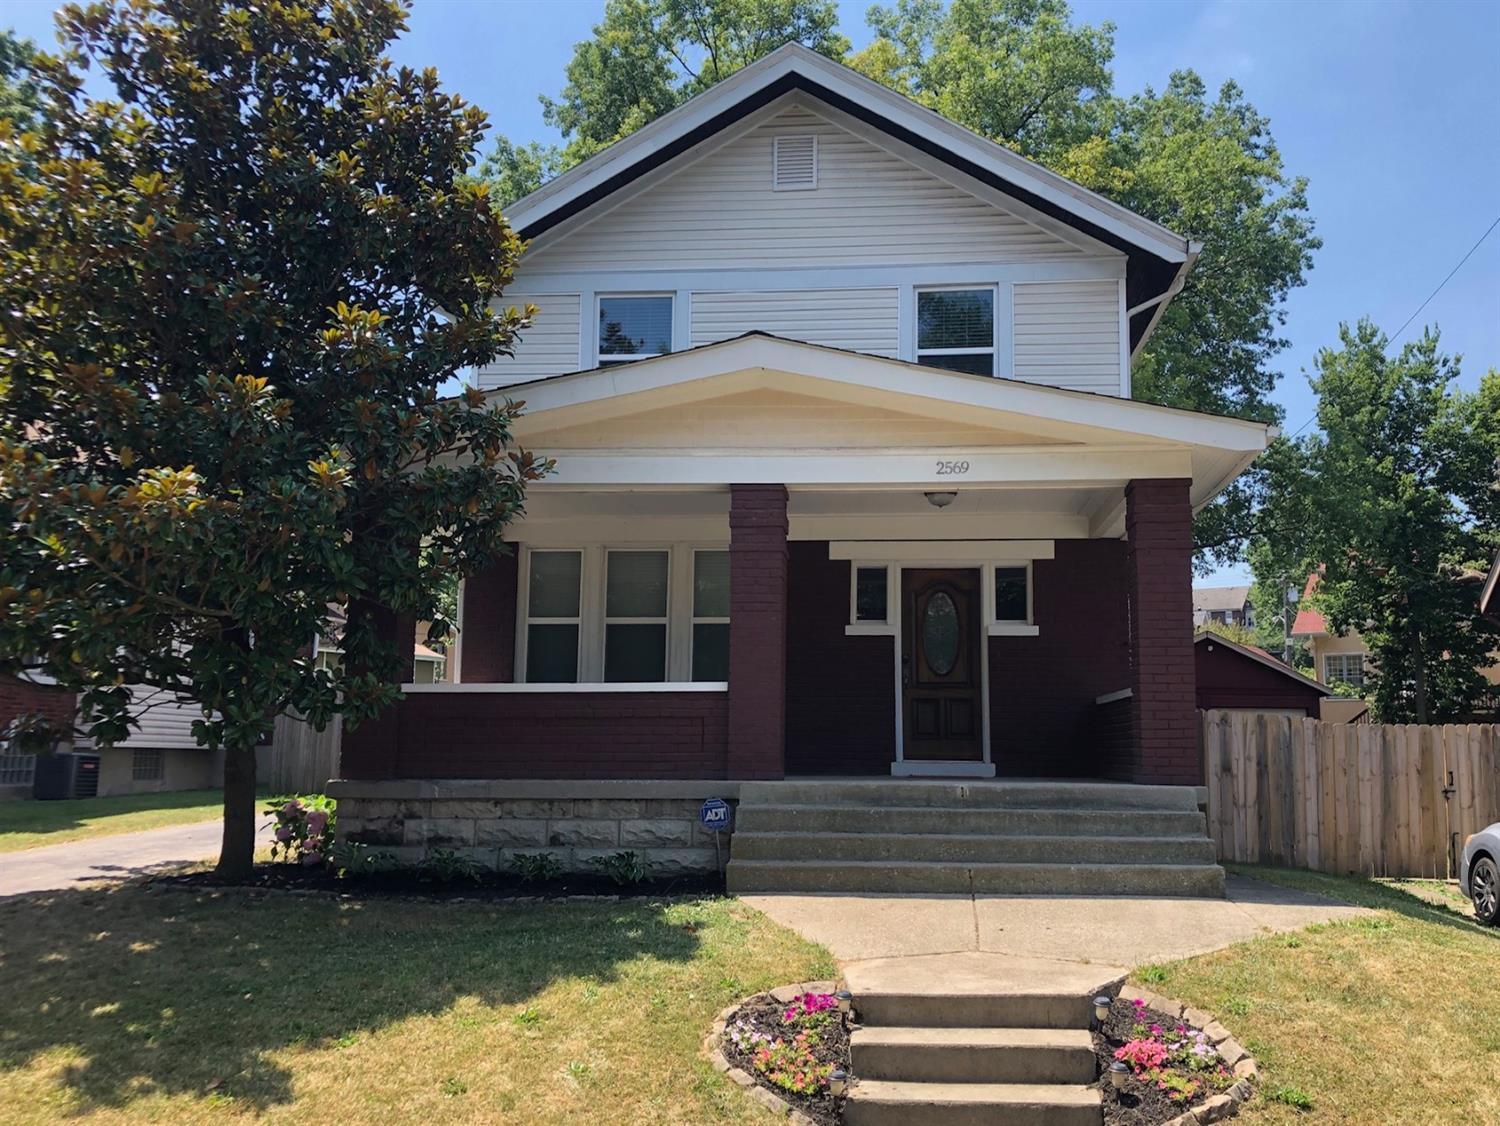 Property for sale at 2569 Irving Place, Norwood,  Ohio 45212